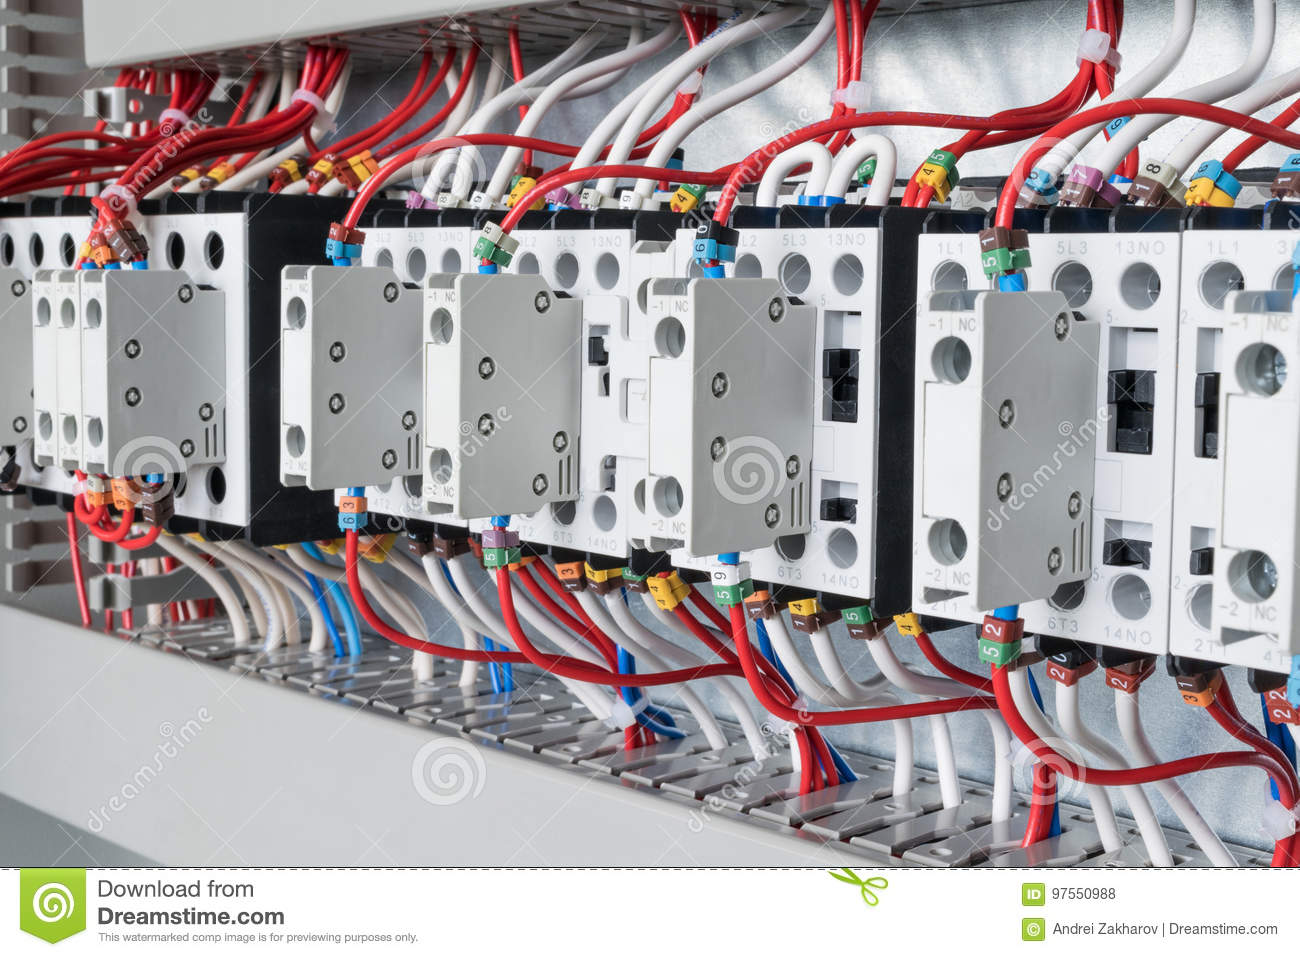 hight resolution of several contactors arranged in a row in an electrical closet